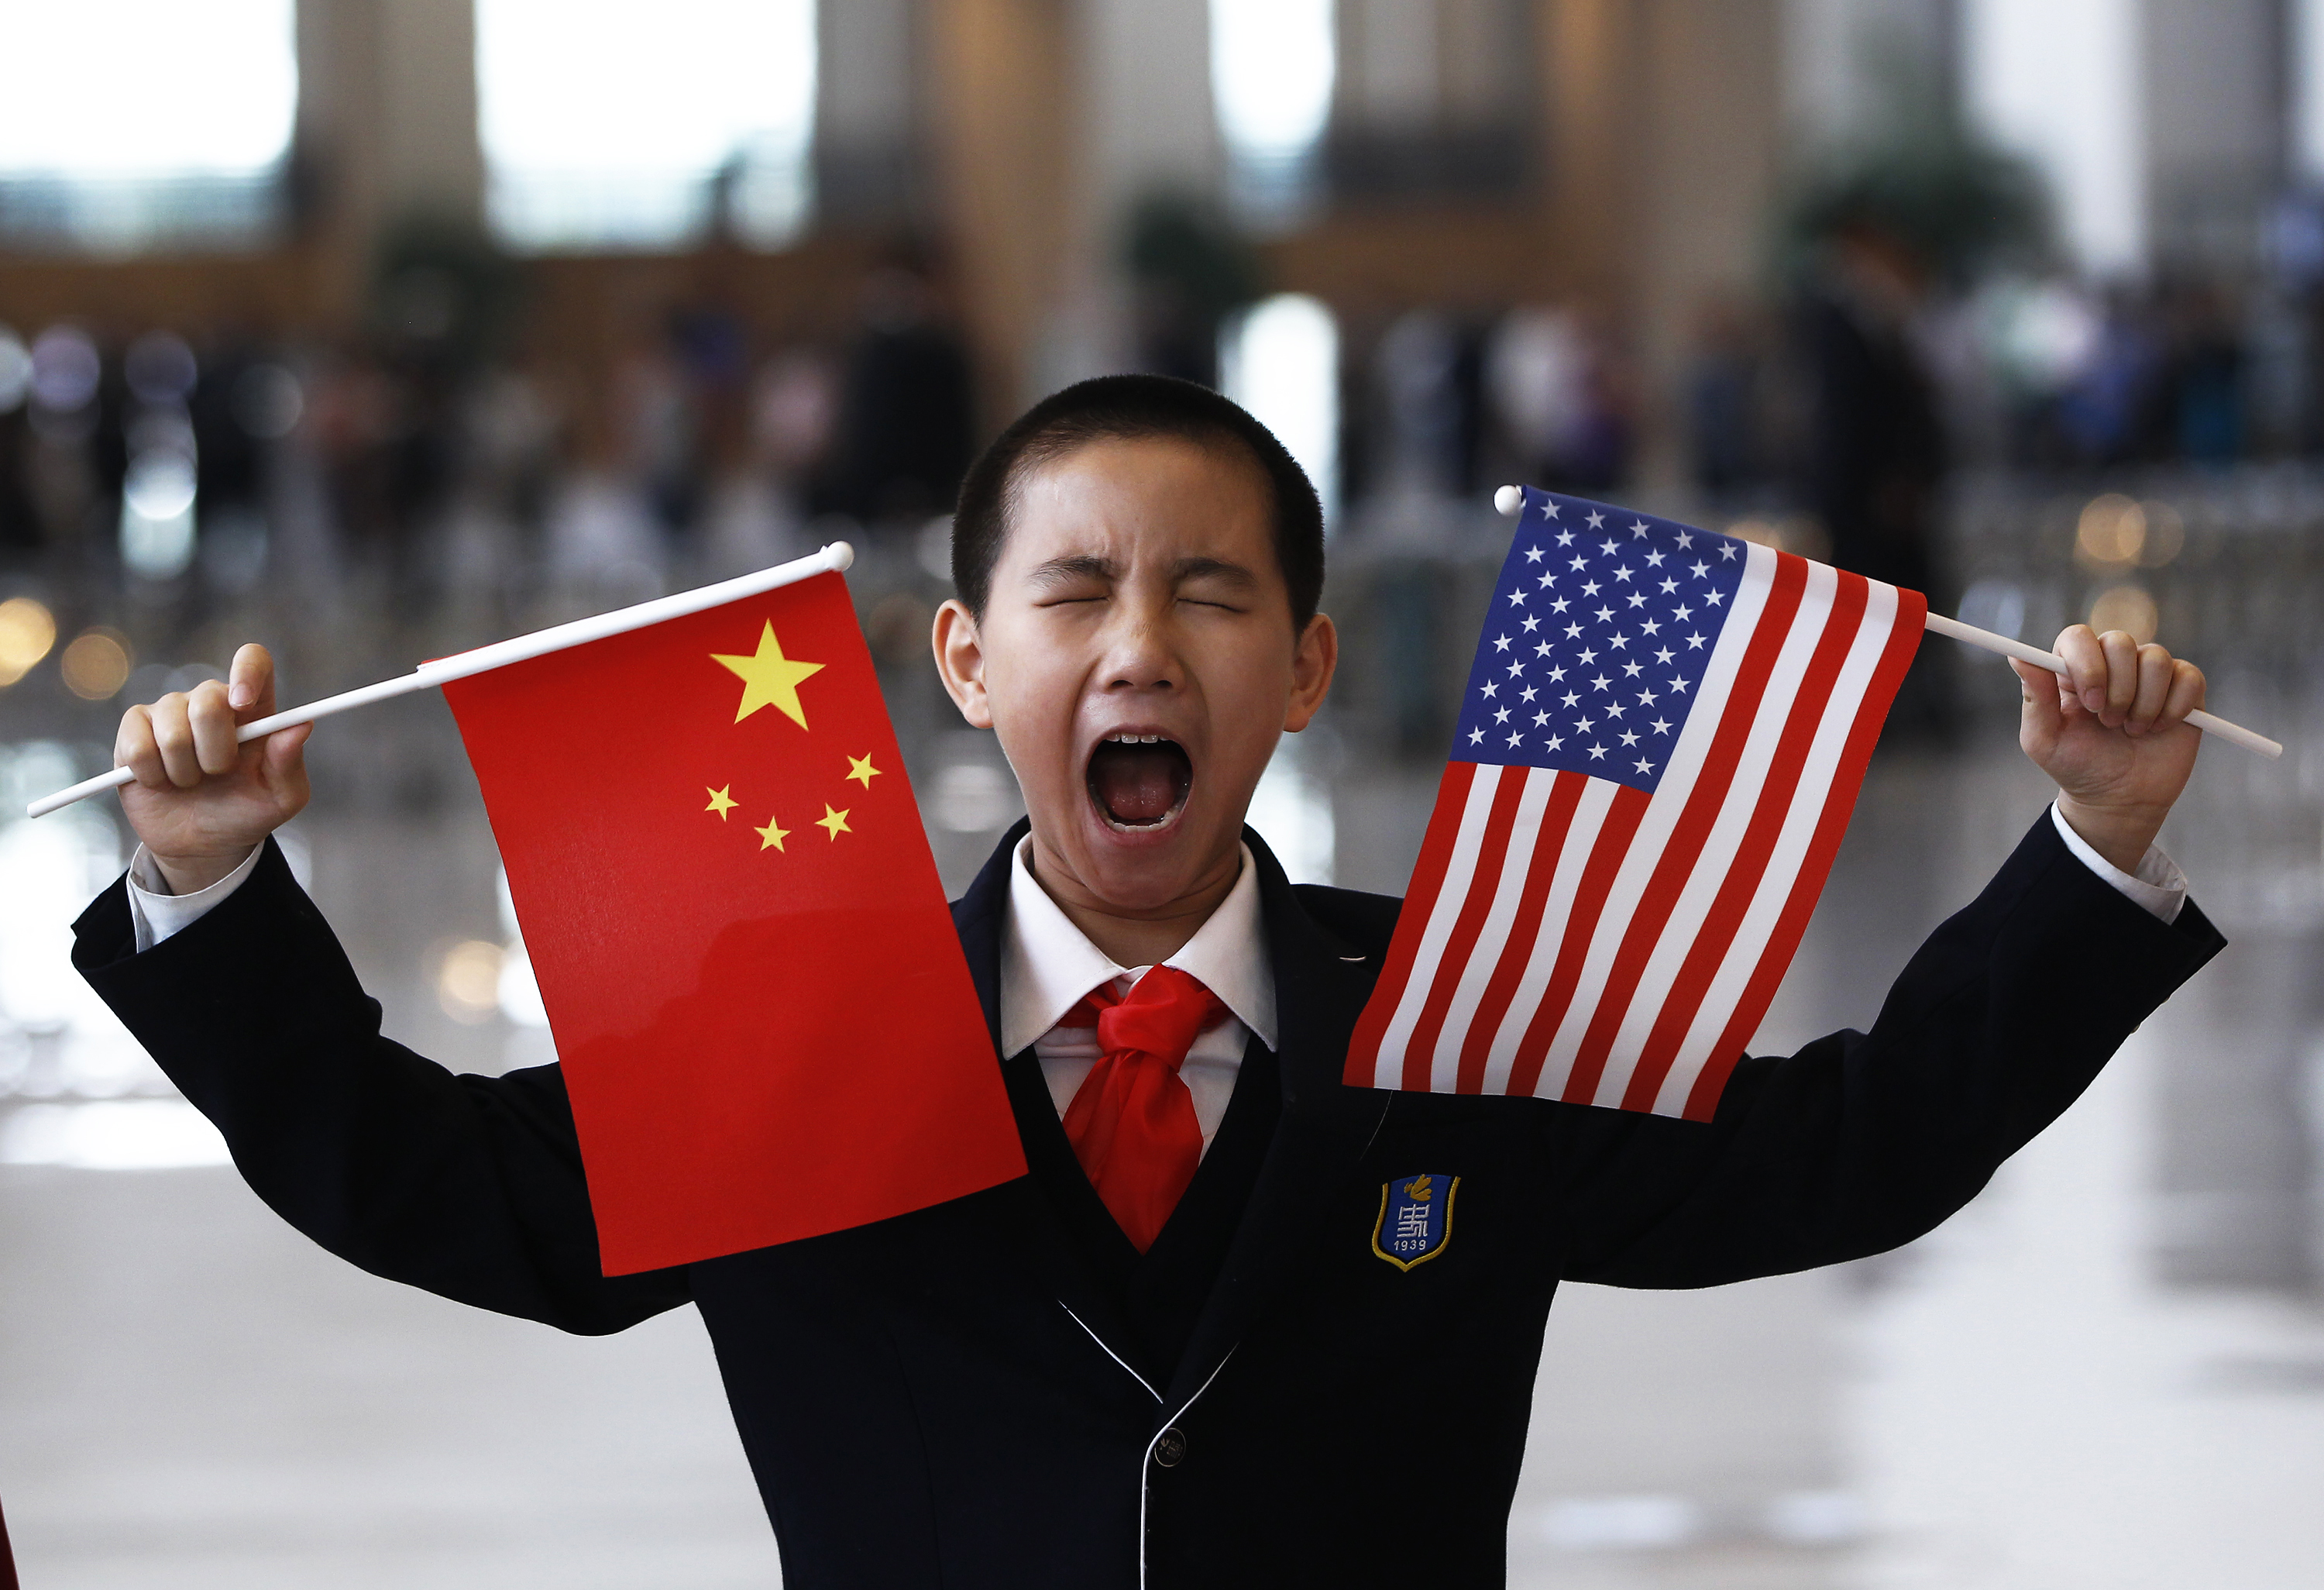 The U.S.-China relationship: Trading blows